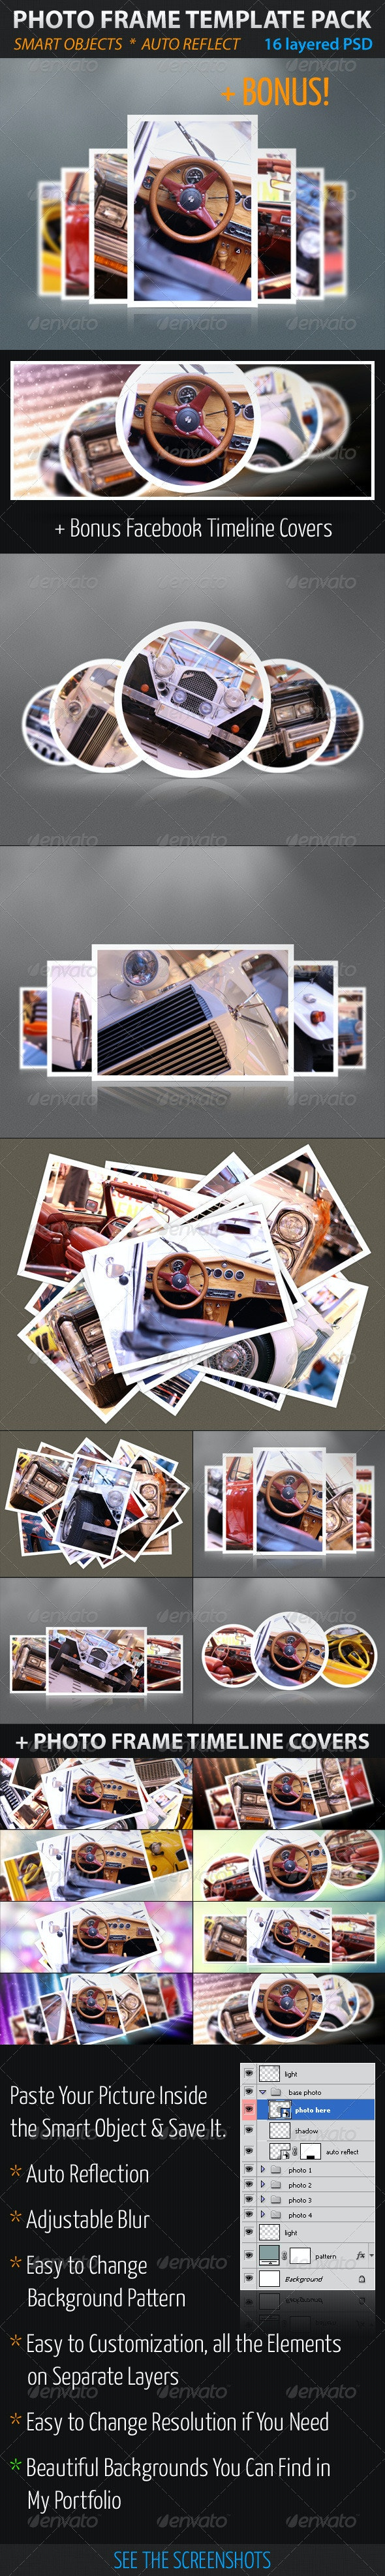 Photo Frame Template Pack - Artistic Photo Templates